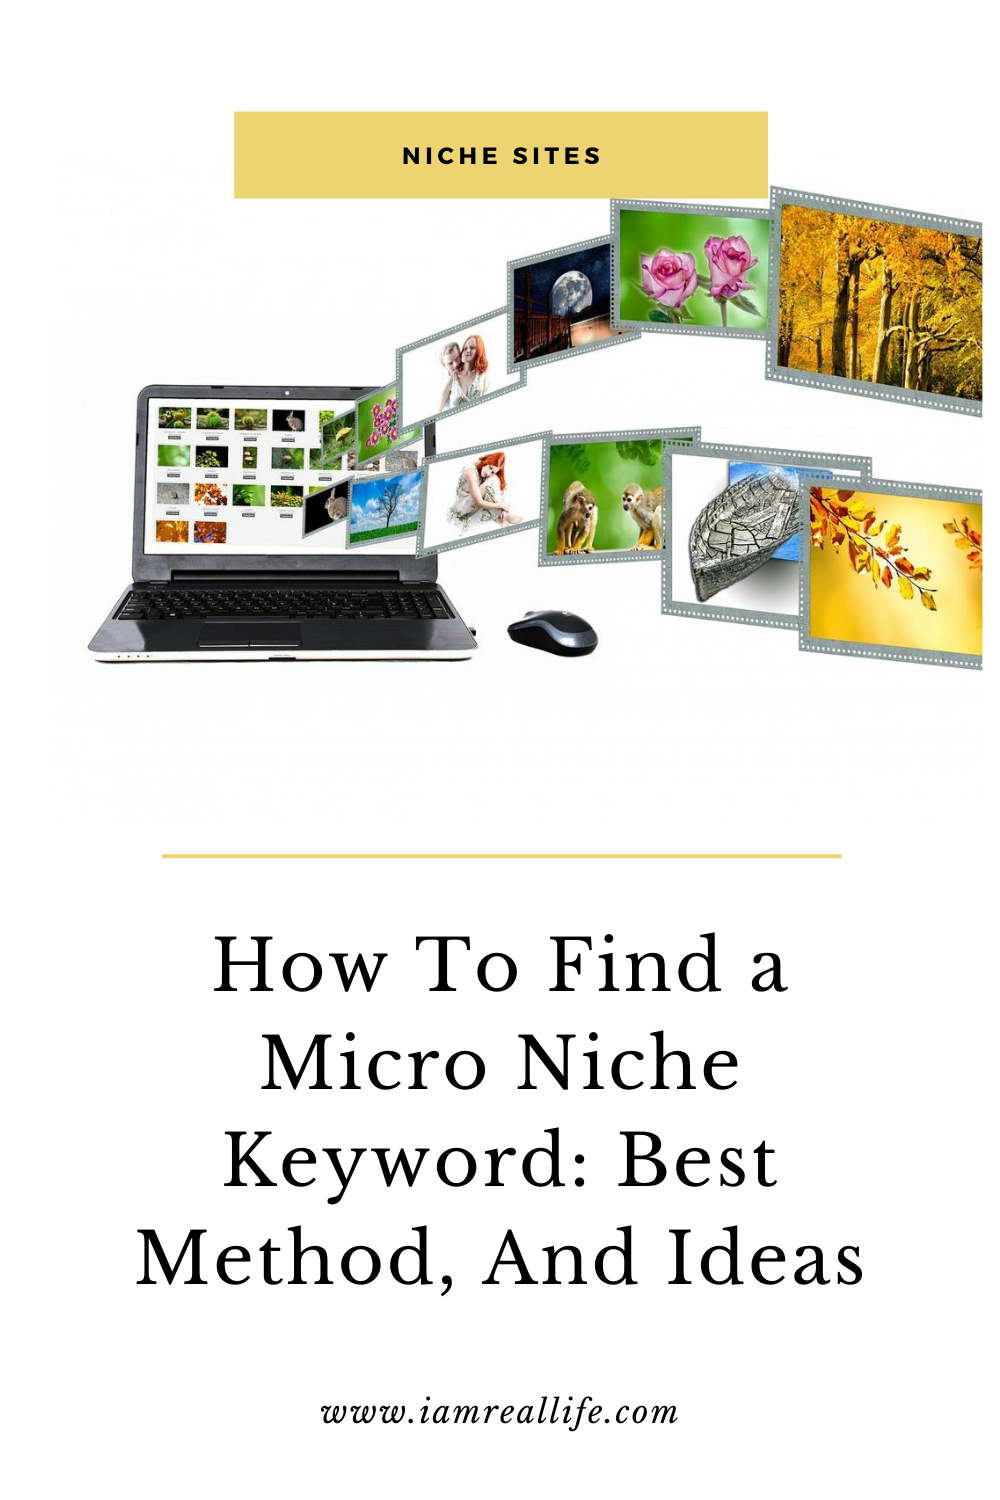 How To Make Money With Micro Niche Sites